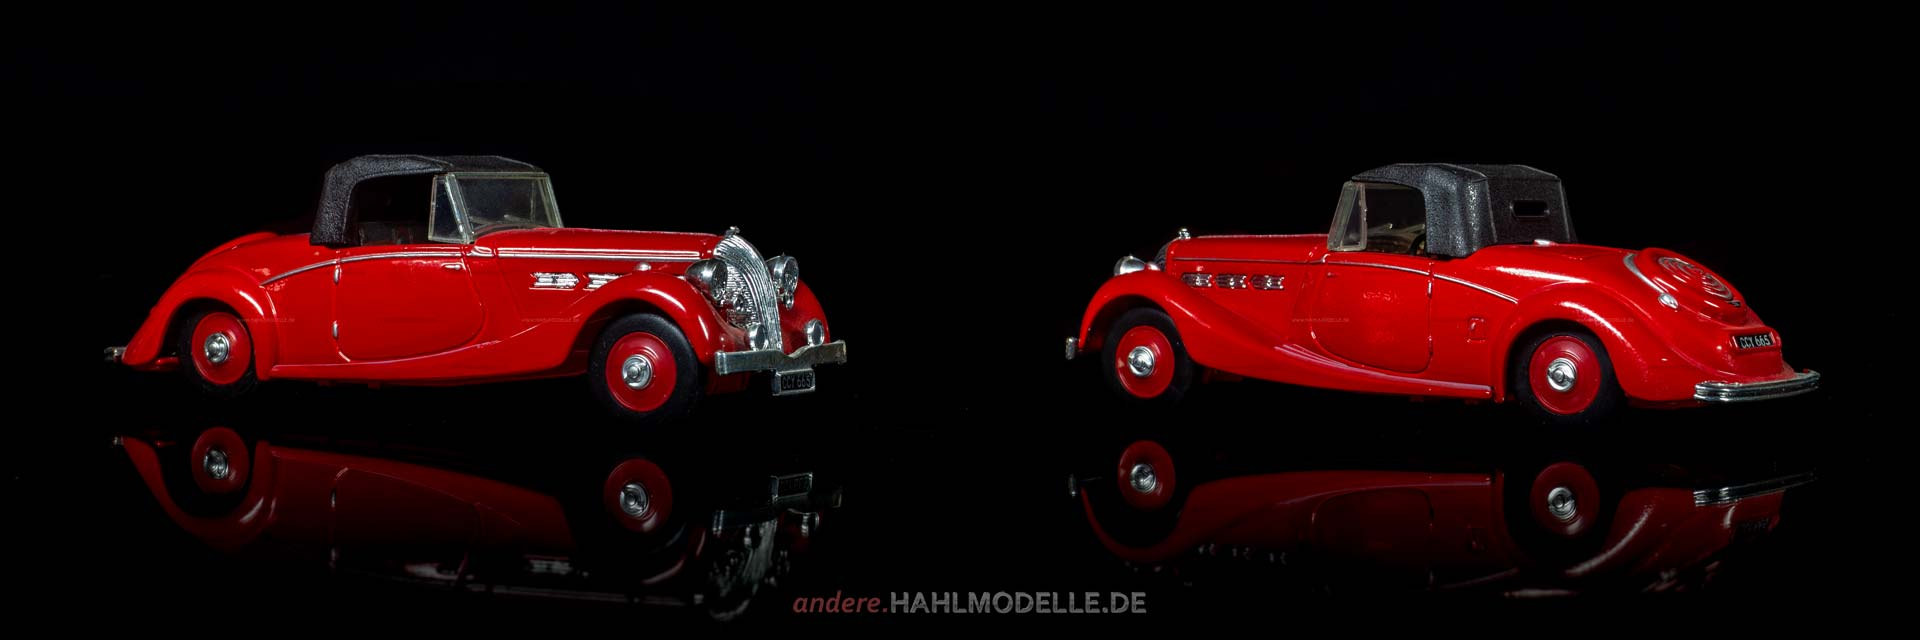 Triumph Dolomite | Roadster | Ixo (Del Prado Car Collection) | 1:43 | www.andere.hahlmodelle.de